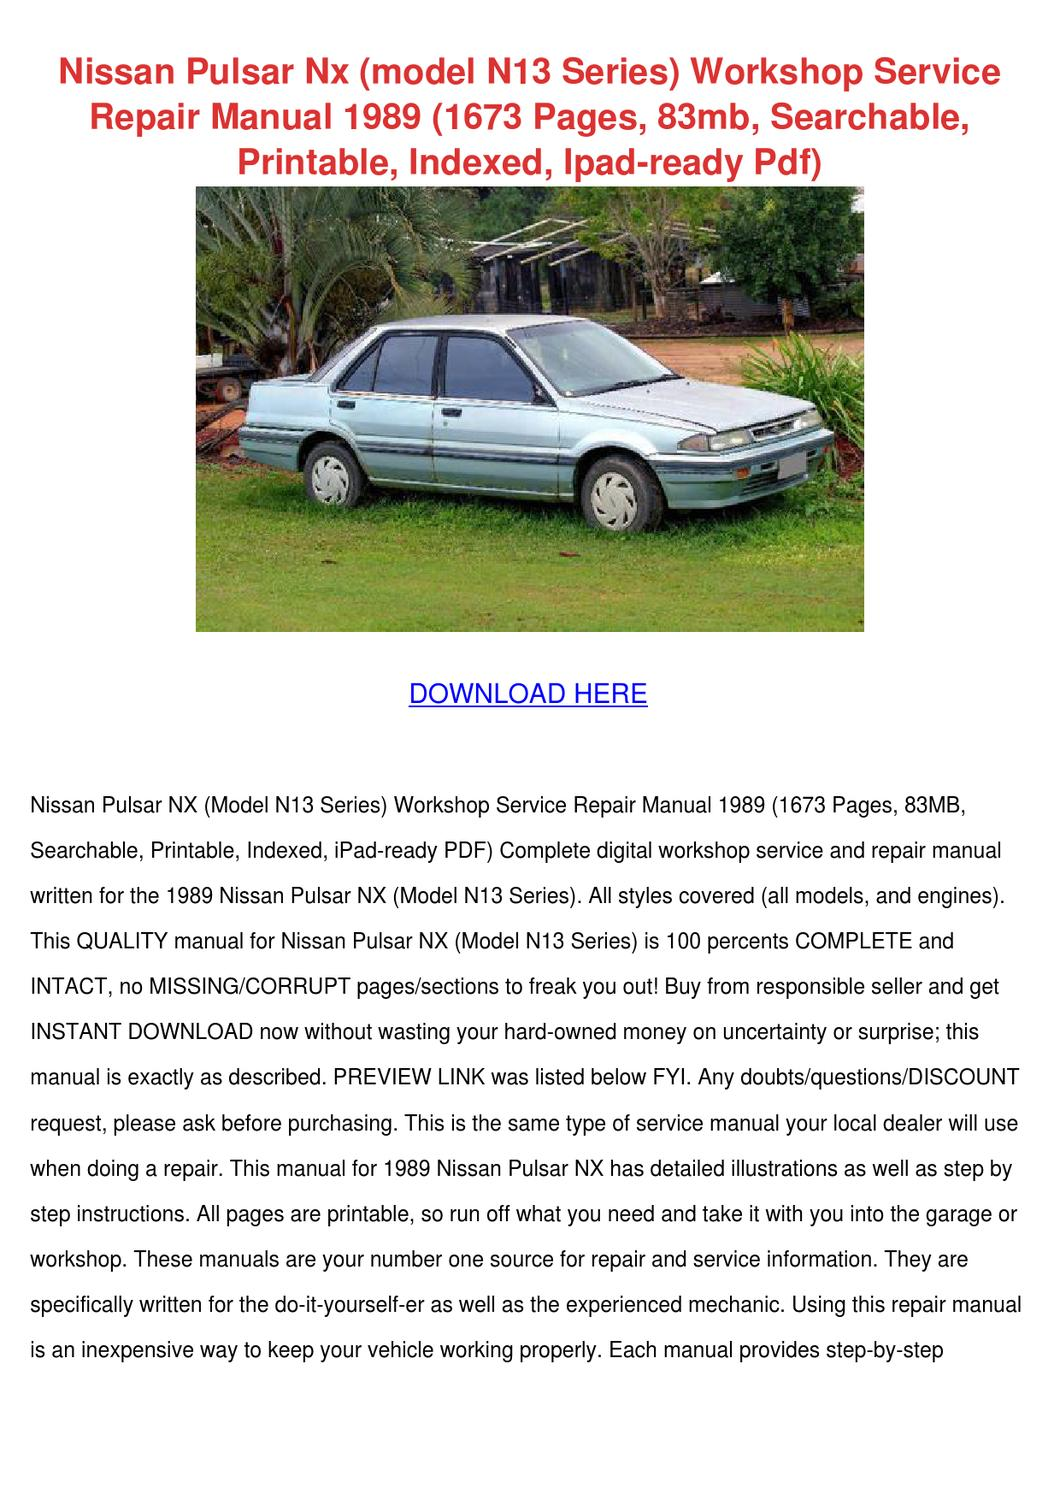 Nissan Pulsar Nx Model N13 Series Workshop Se by WilheminaTrinidad - issuu